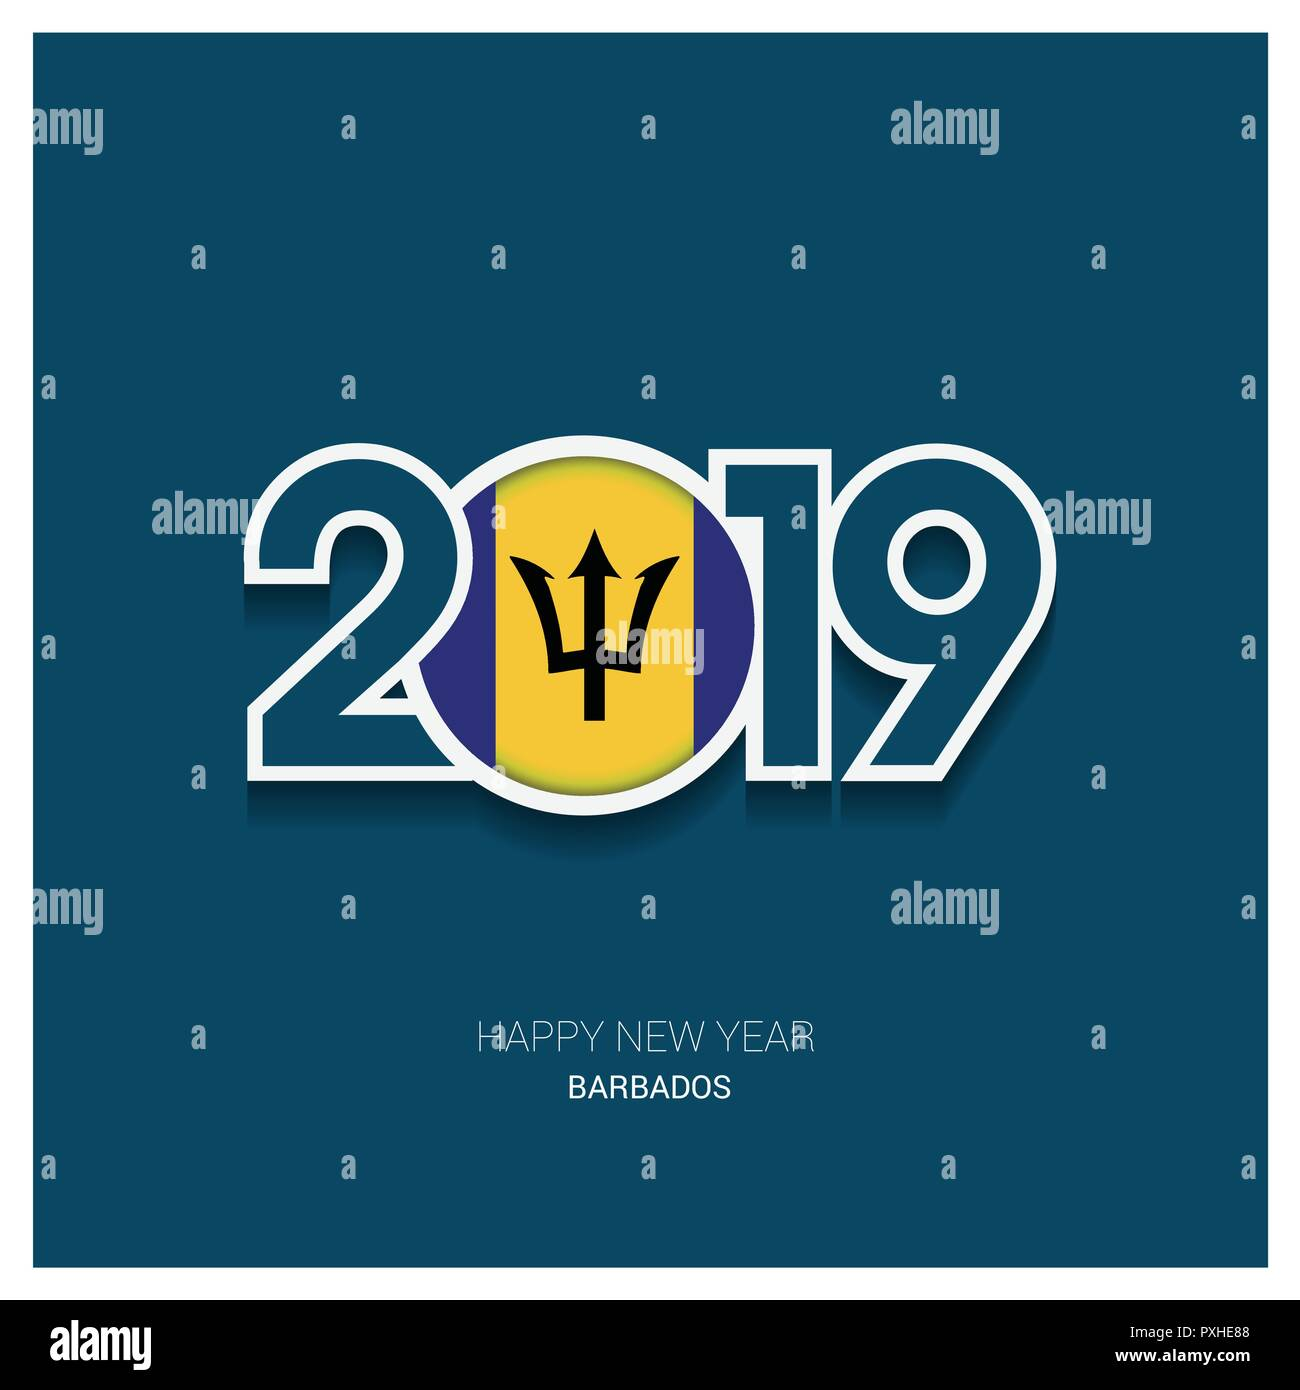 2019 Barbados Typography, Happy New Year Background - Stock Vector